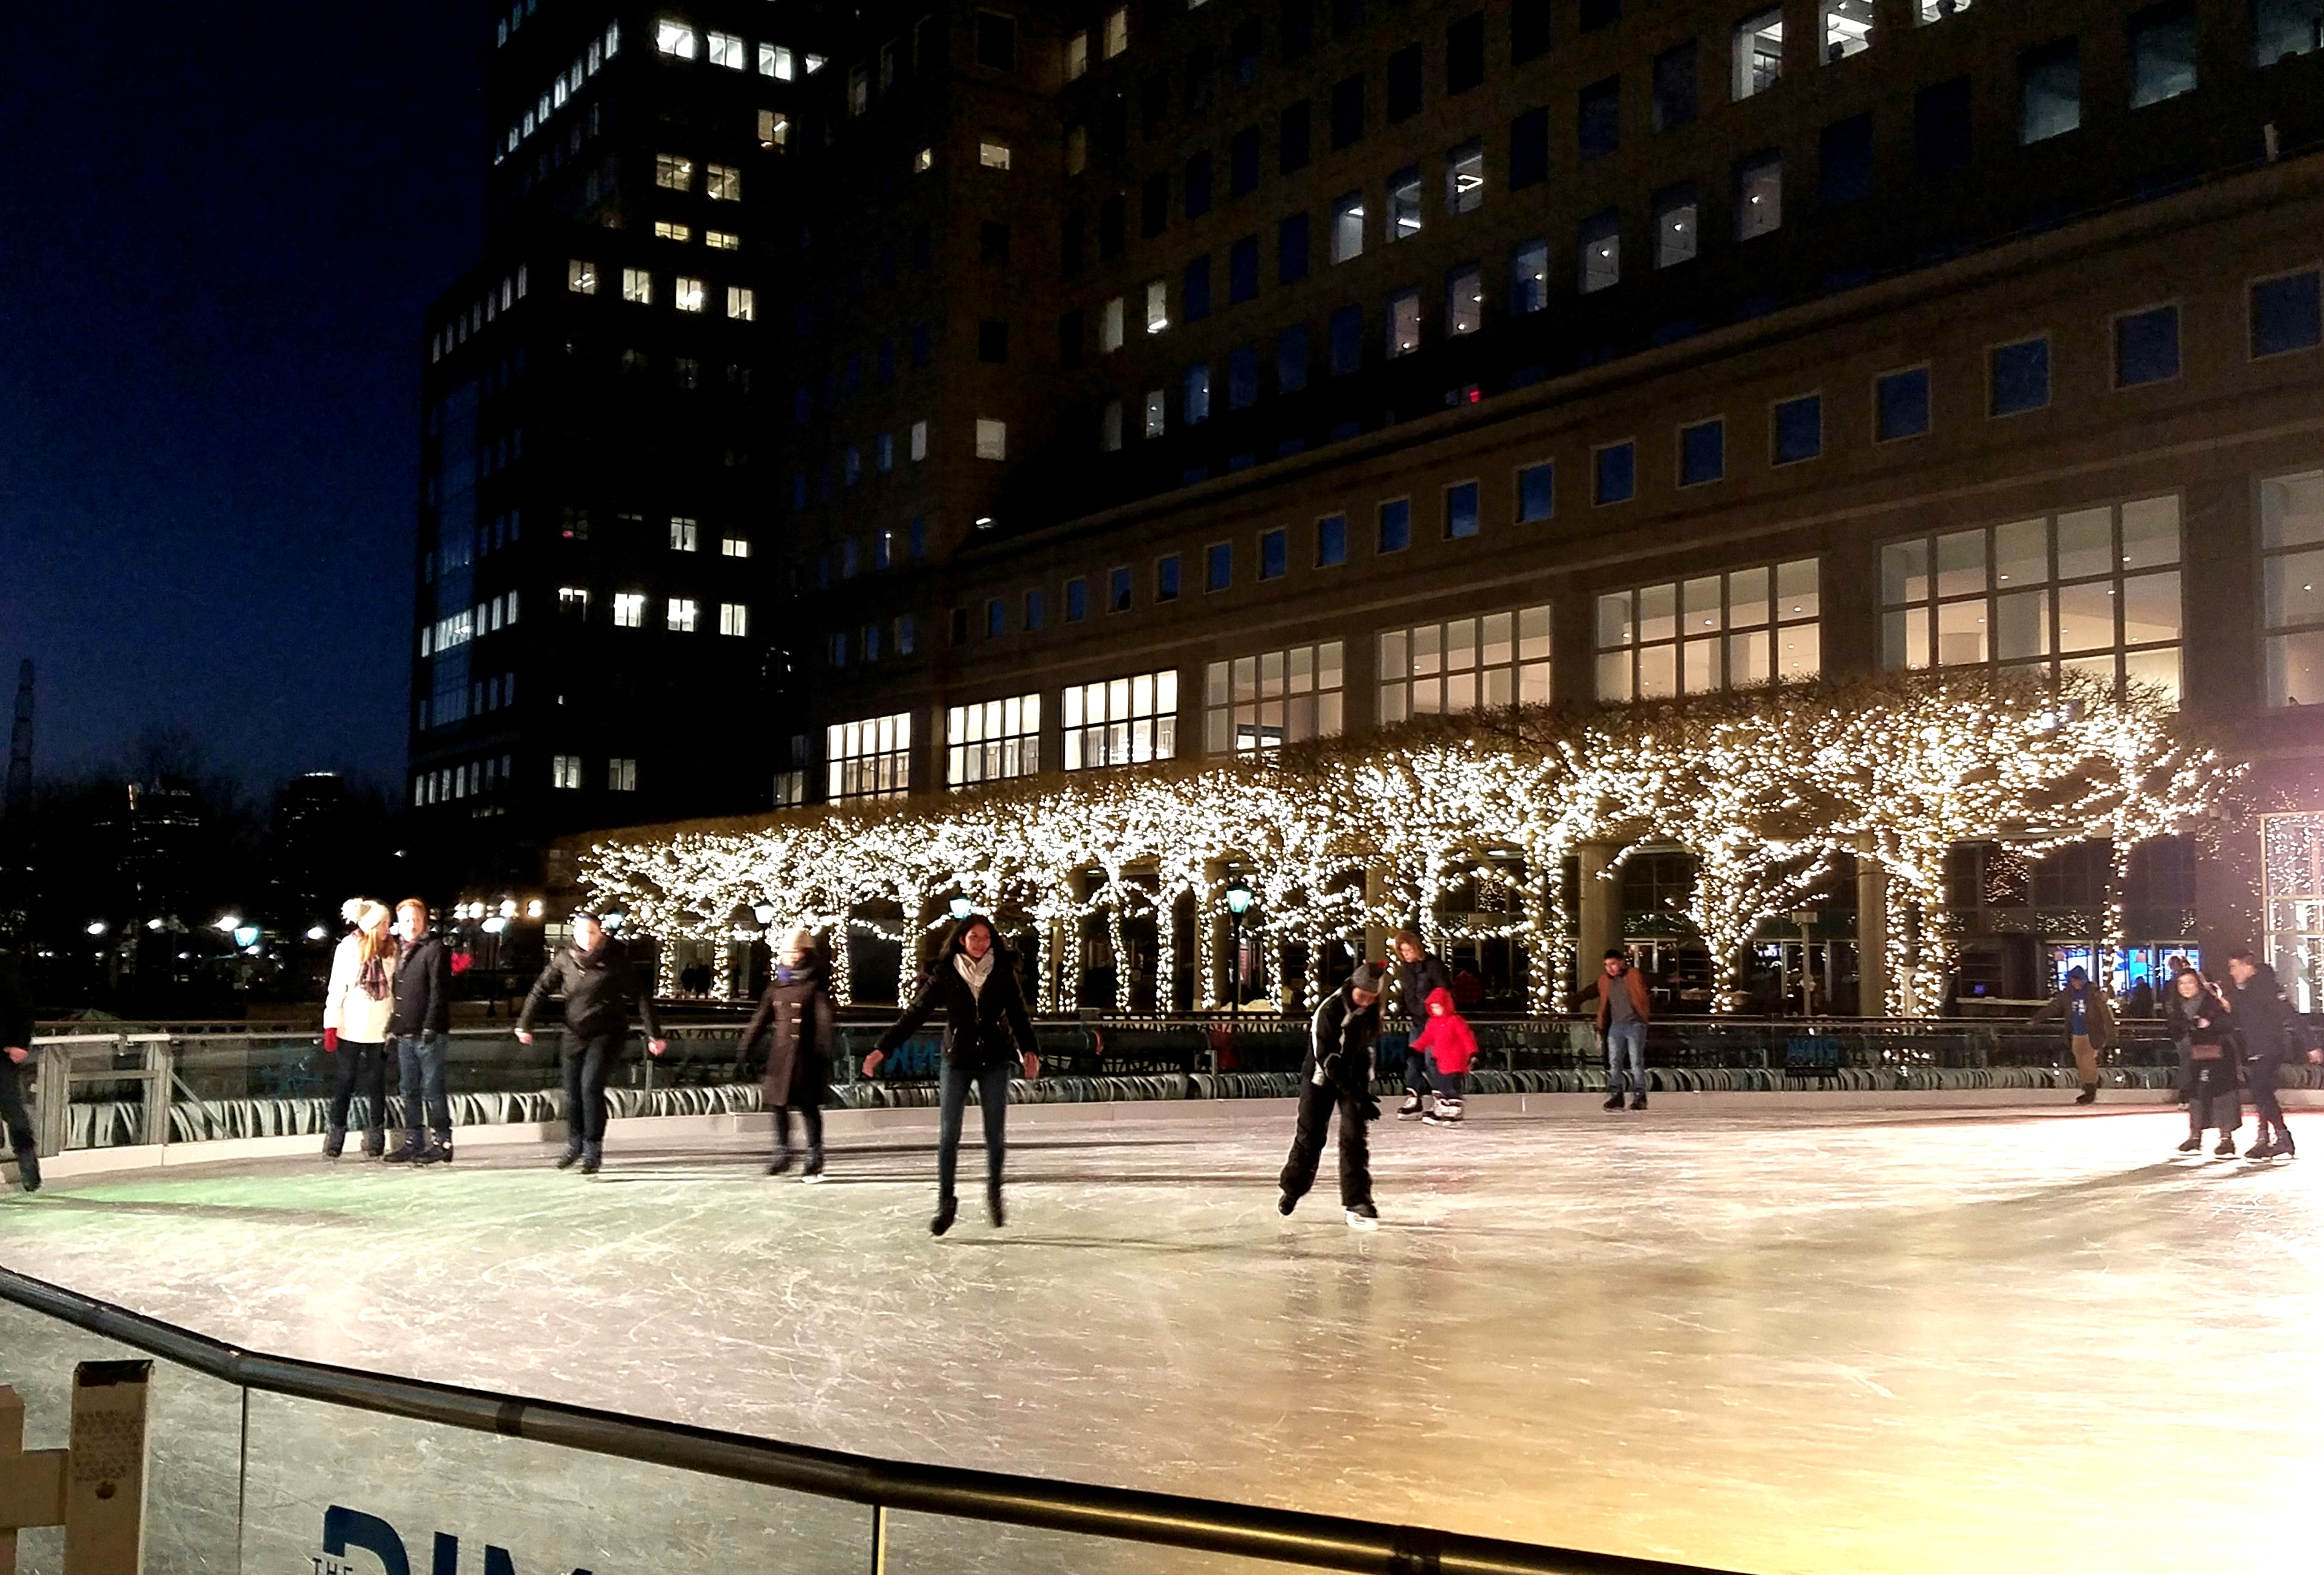 A photo of the rink at Battery Park, Lower Manhattan  by LensMoments - Nichole Spates 2019